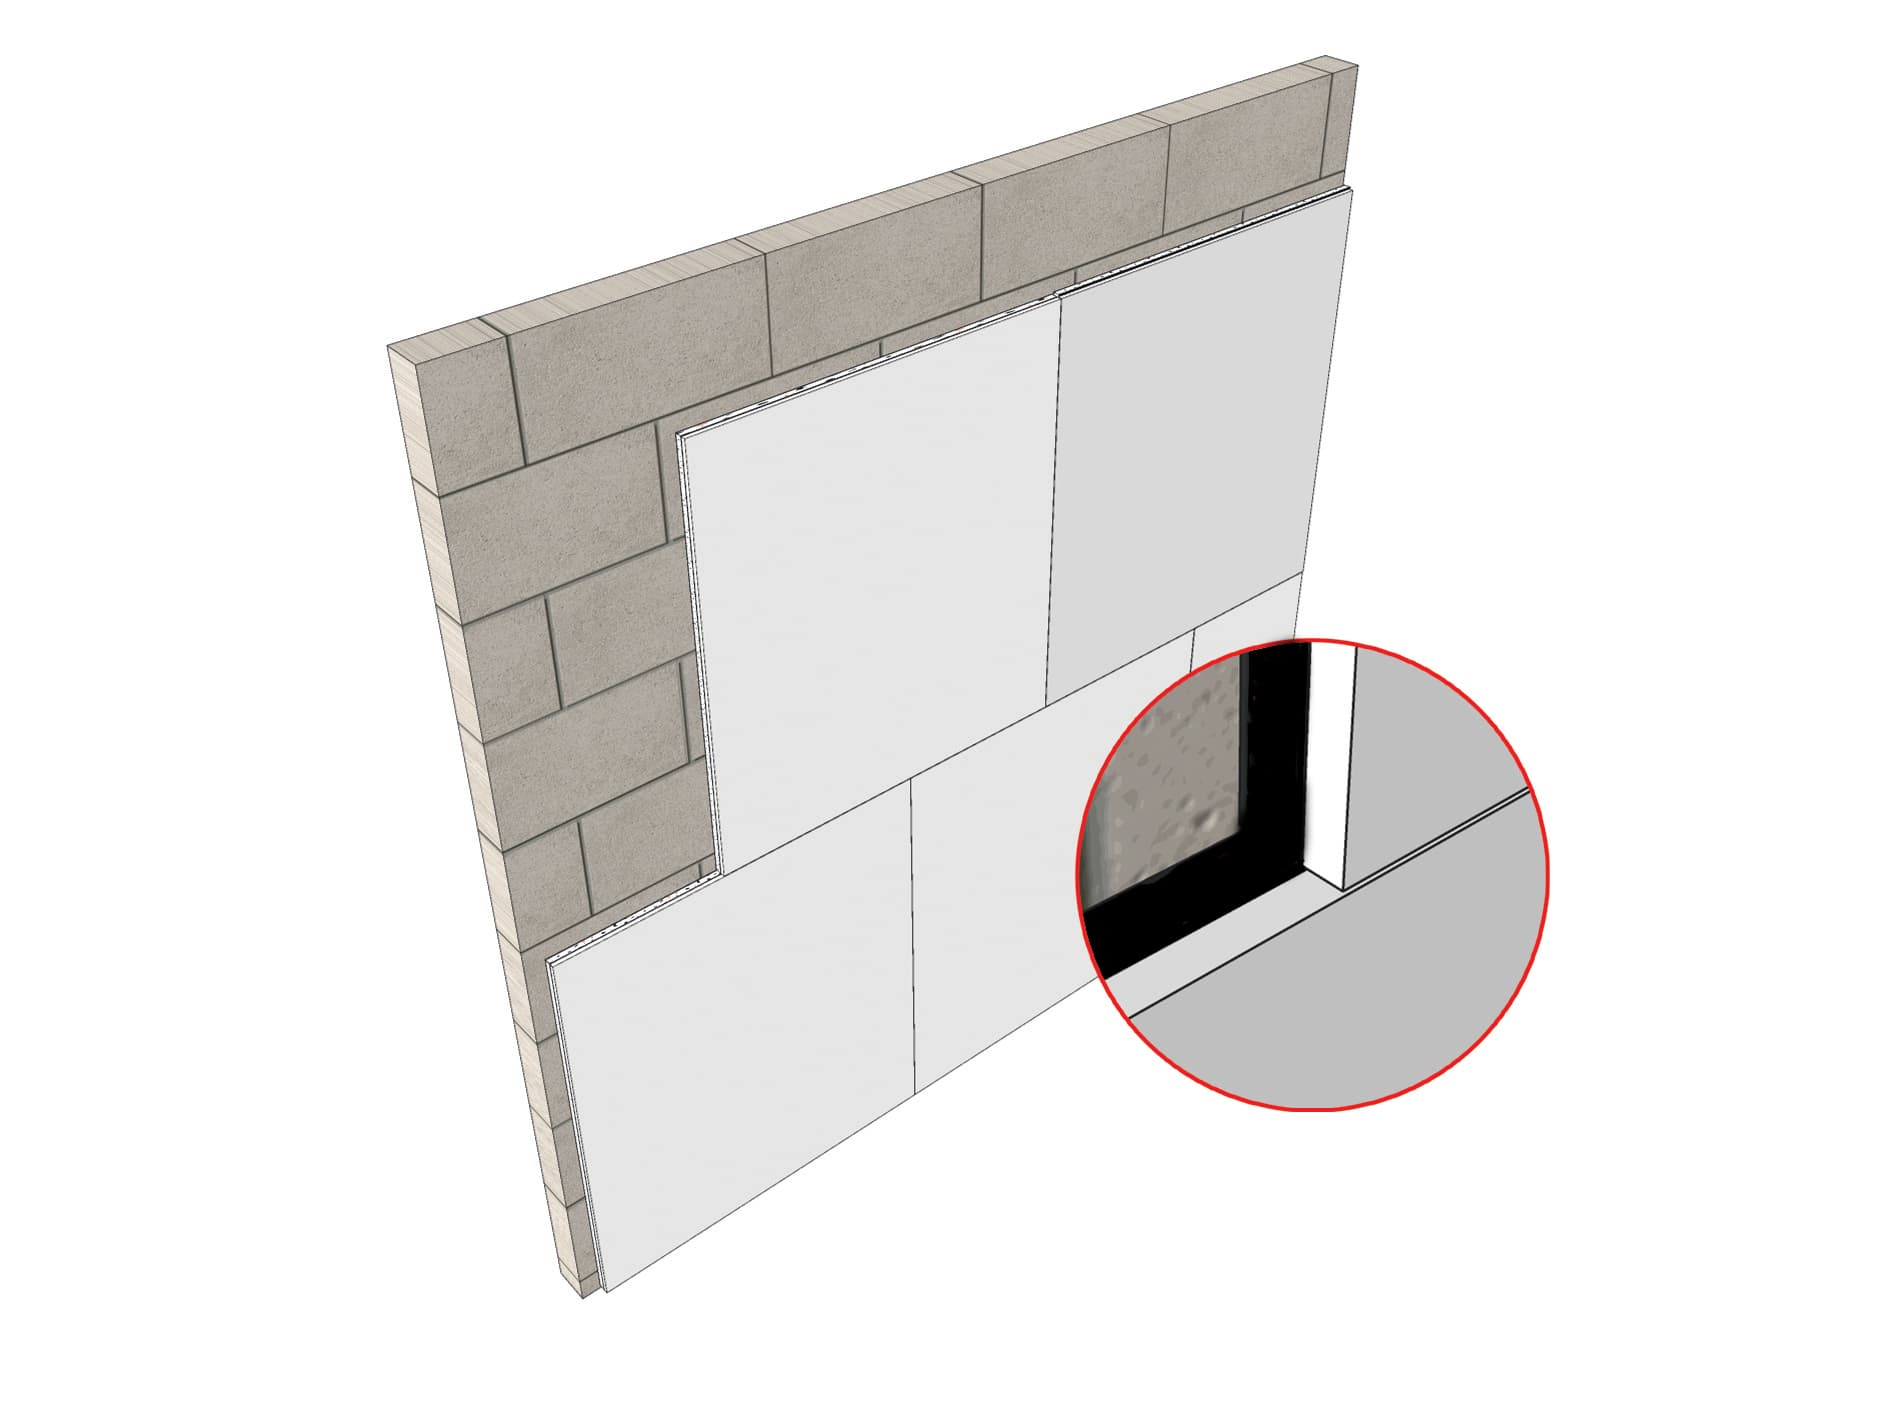 Silent board plus ideal for soundproofing walls